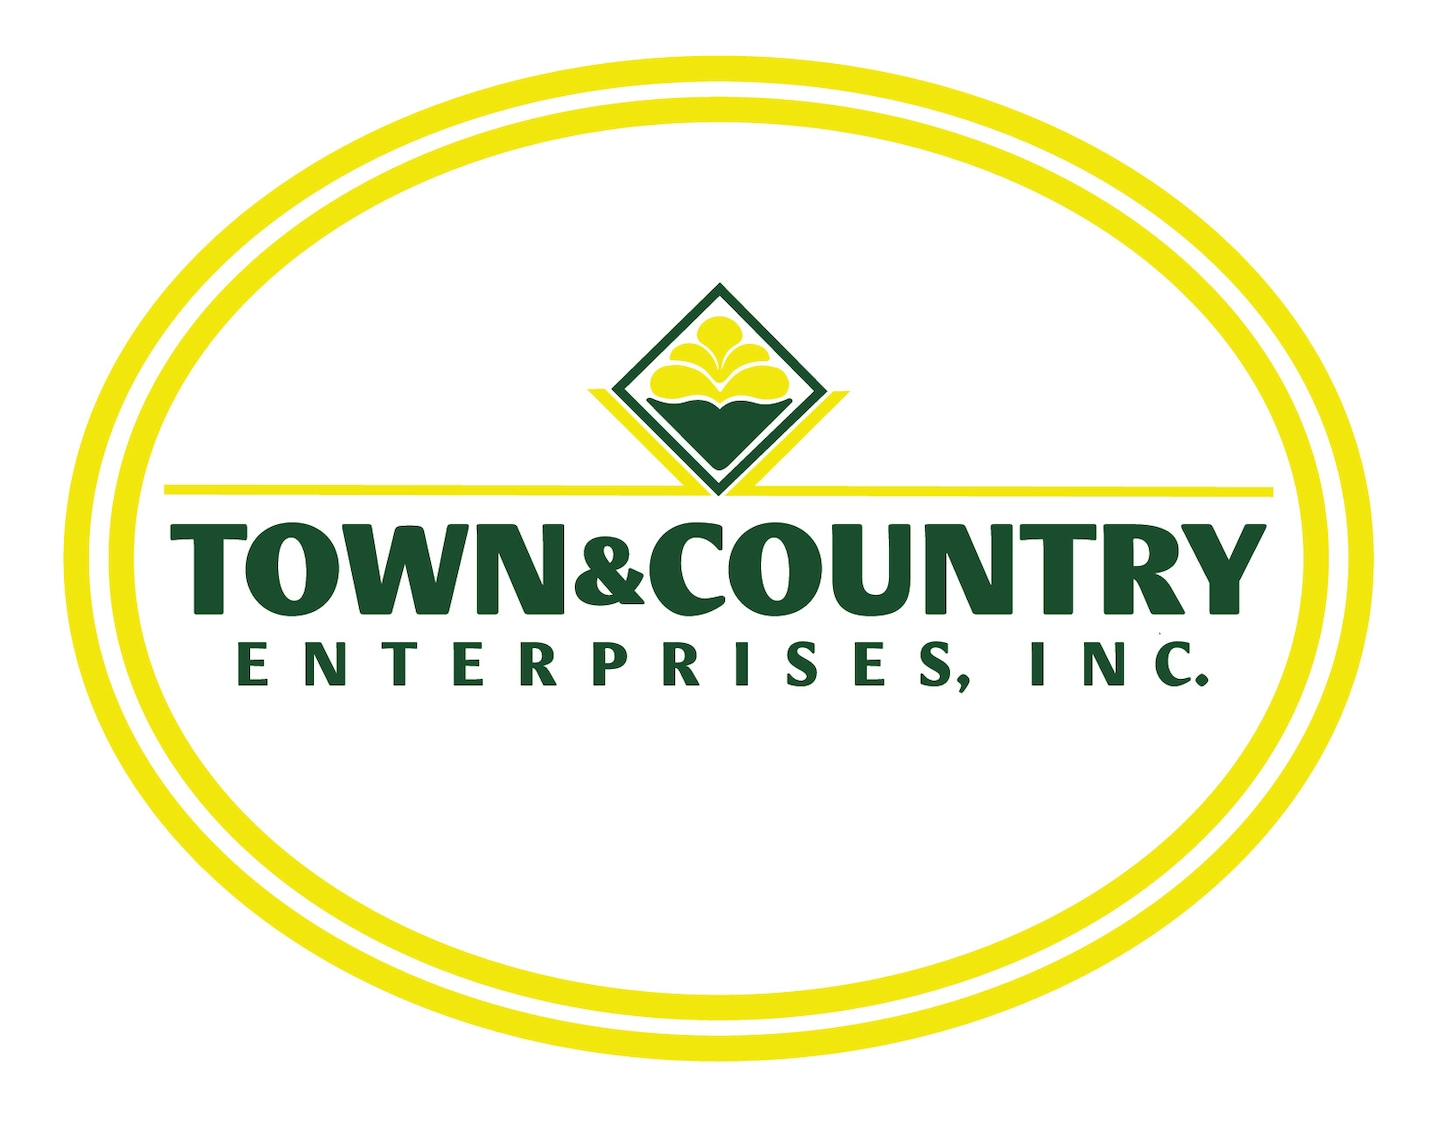 Town & Country Enterprises Inc